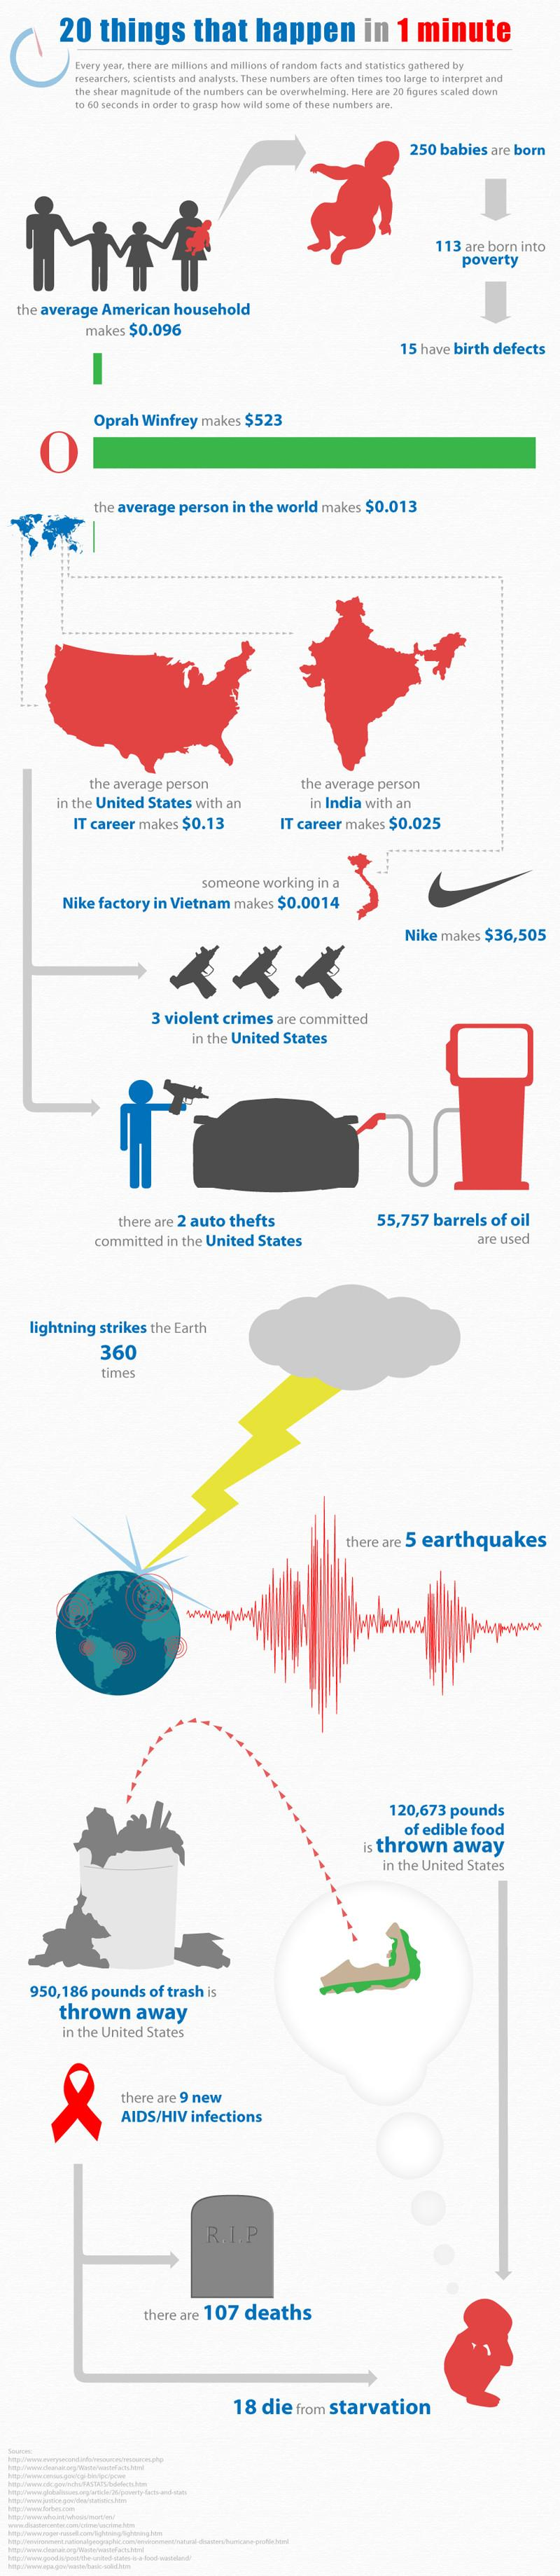 """""""20 Things that Happen in 1 Minute"""" Graphic » Sociological Images"""